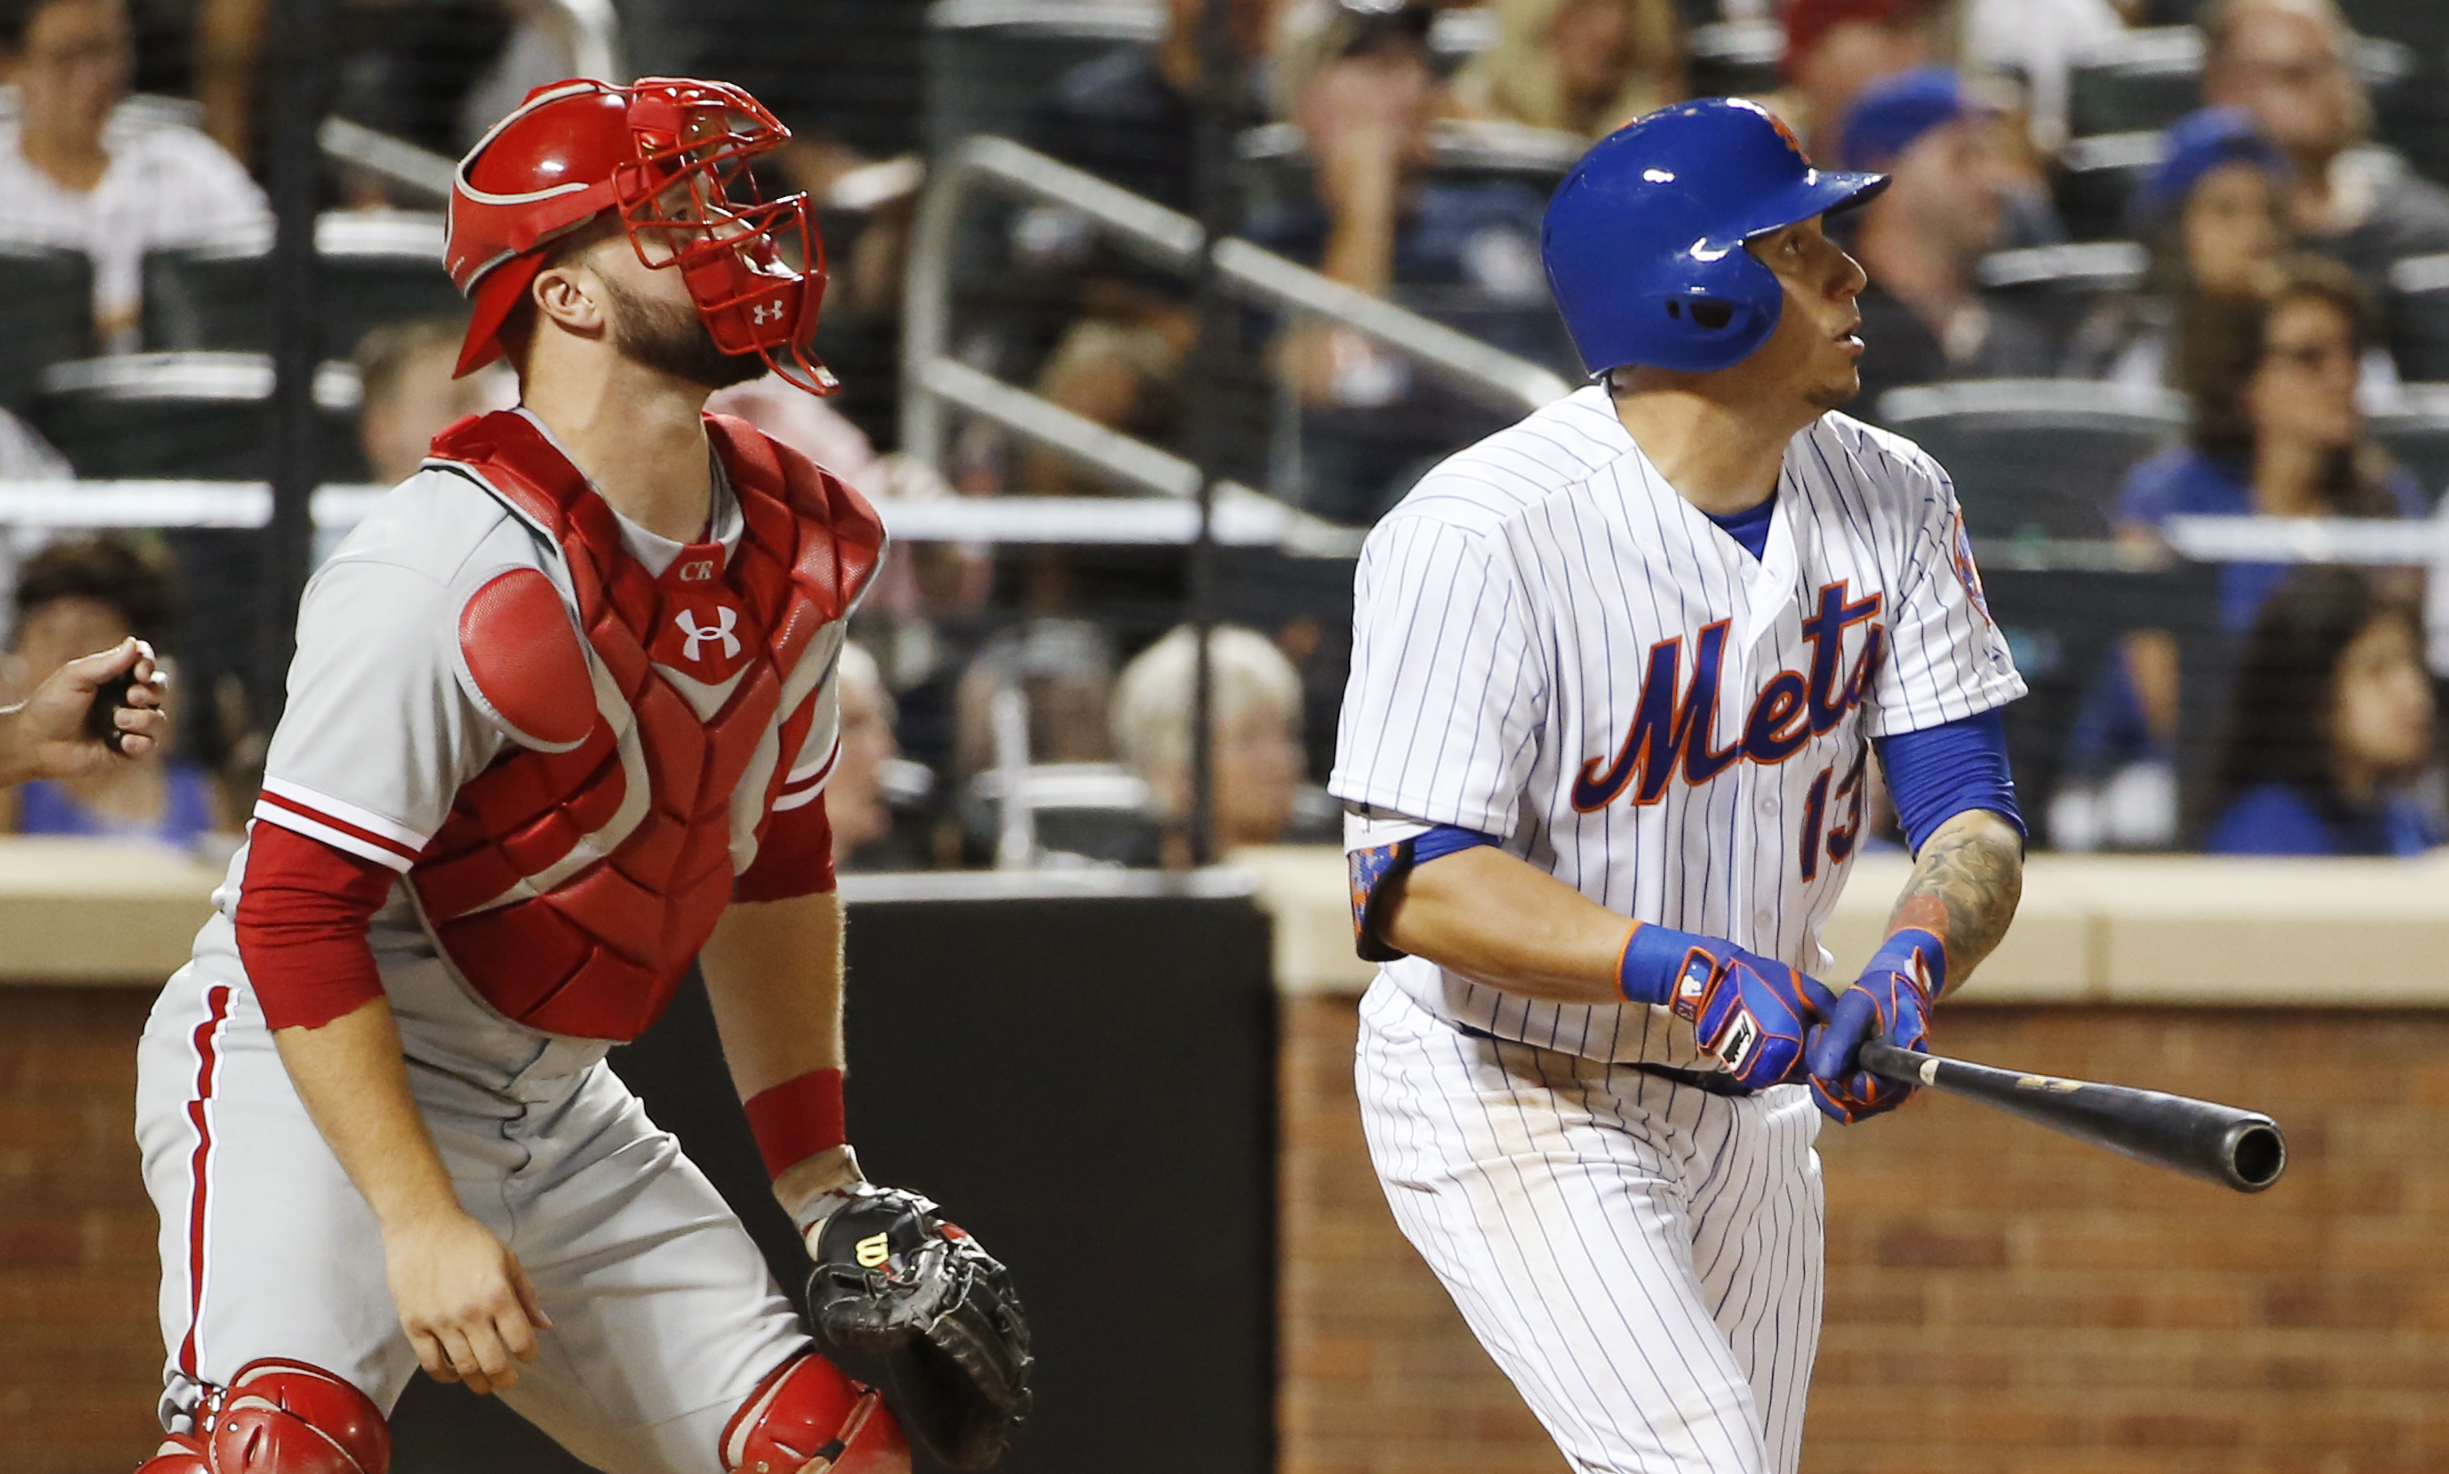 Philadelphia Phillies catcher Cameron Rupp, left, and New York Mets Asdrubal Cabrera watch Cabrera's third-inning, two-run, home run in a baseball game, Saturday, Aug. 27, 2016, in New York. (AP Photo/Kathy Willens)